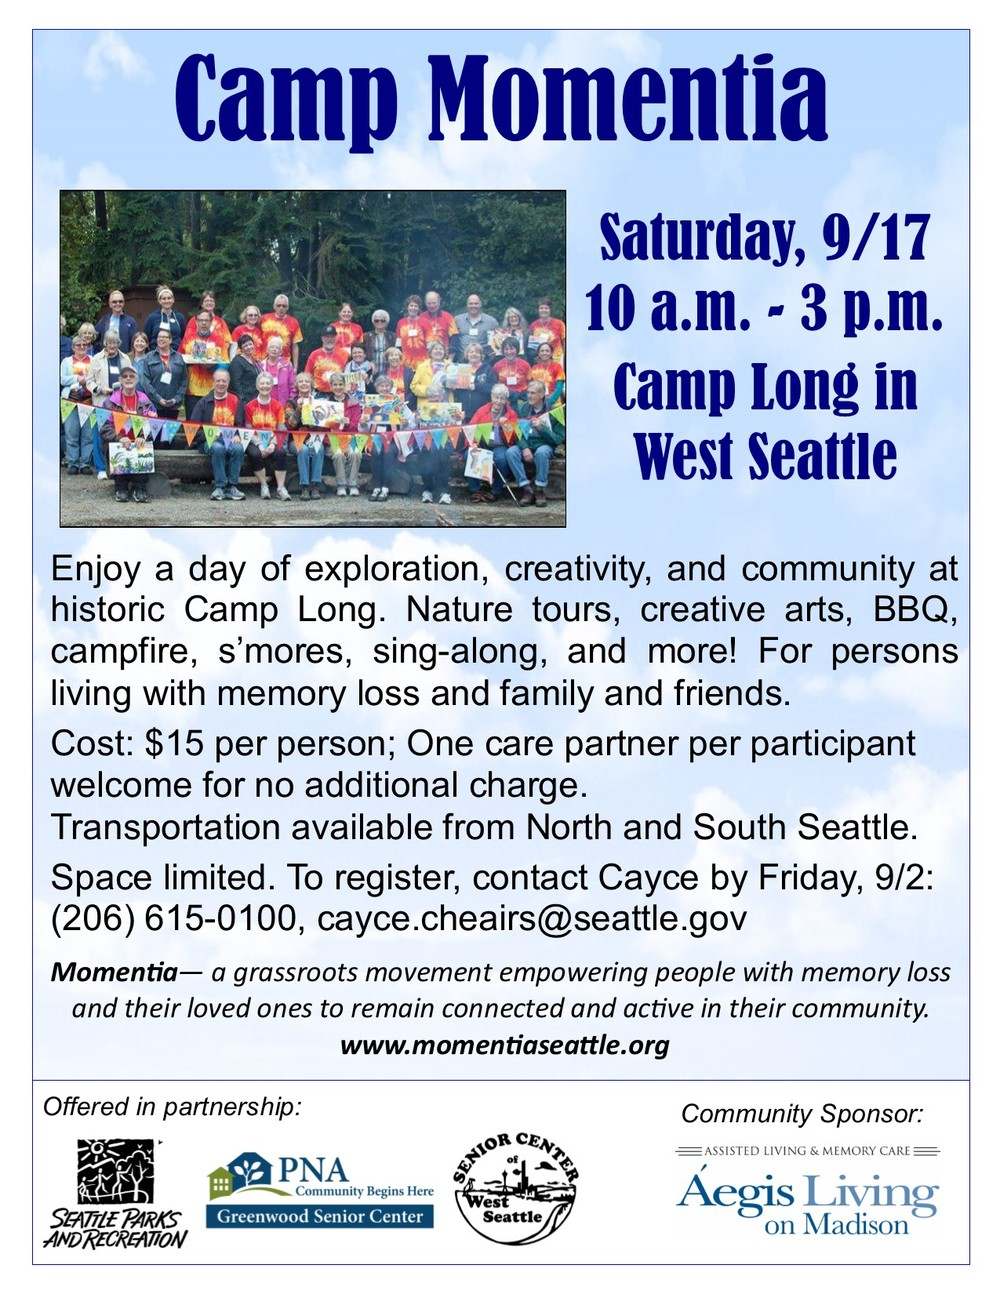 Camp Momentia Flyer 2016.jpg